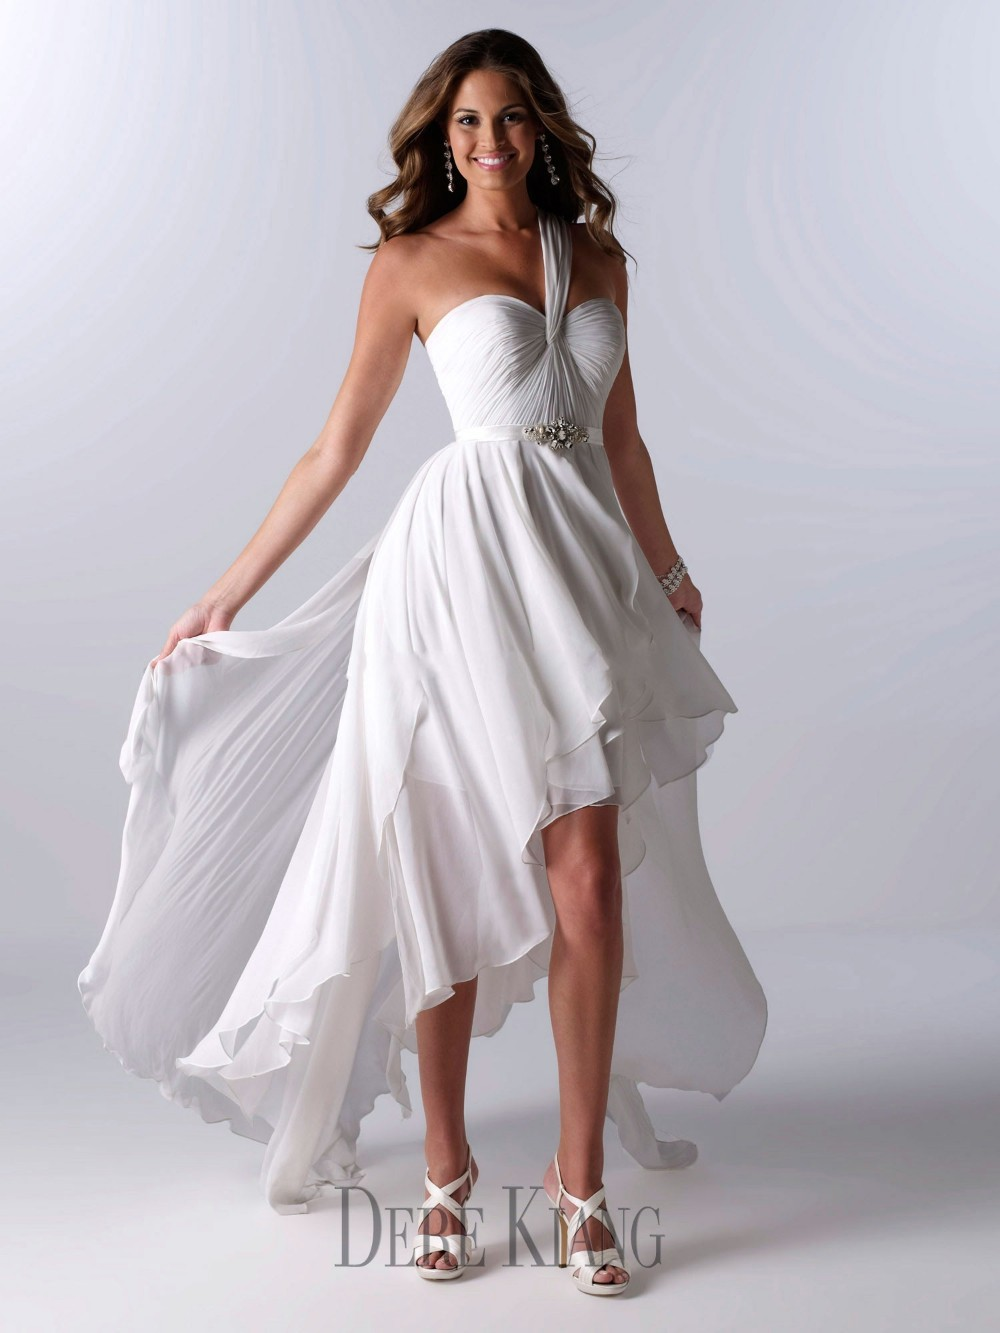 white wedding dress with pink accents short white wedding dresses Casual White Wedding Dress Dresses